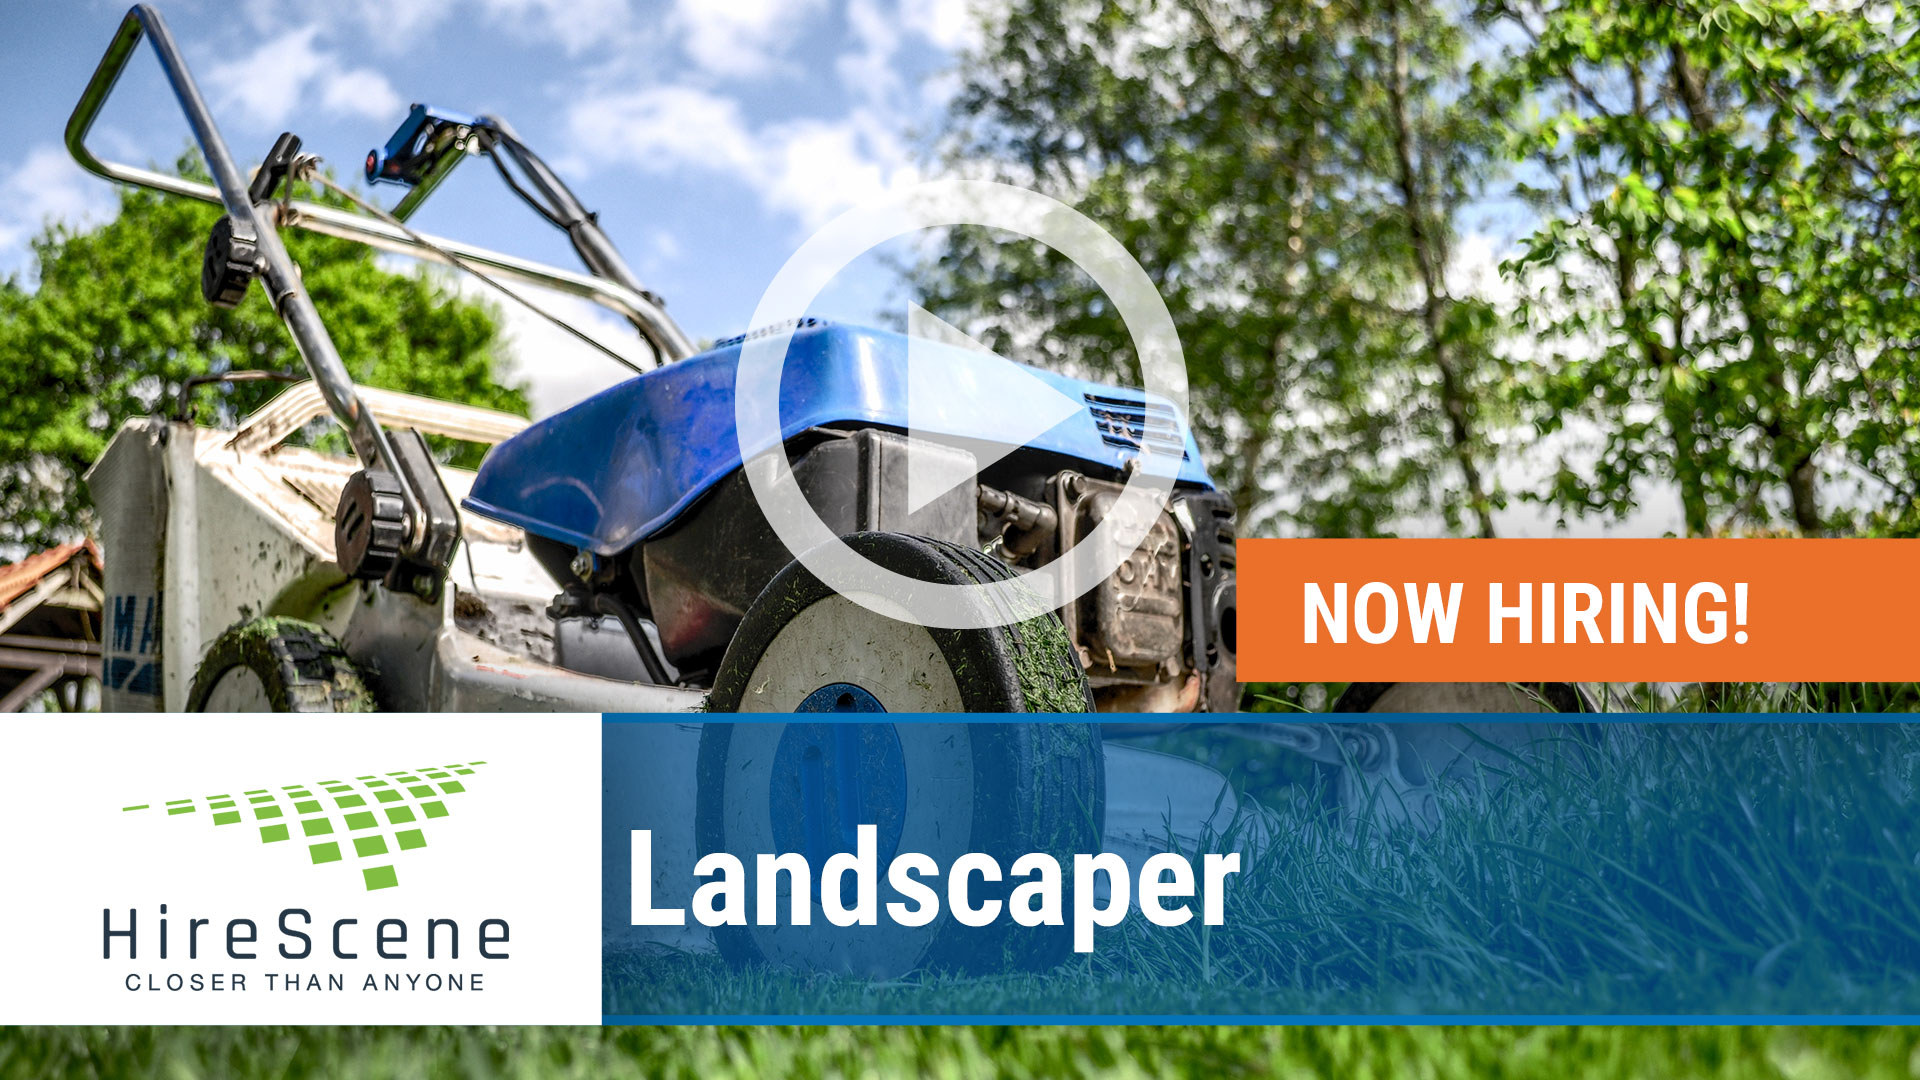 Watch our careers video for available job opening Landscaper in North Carolina, NC